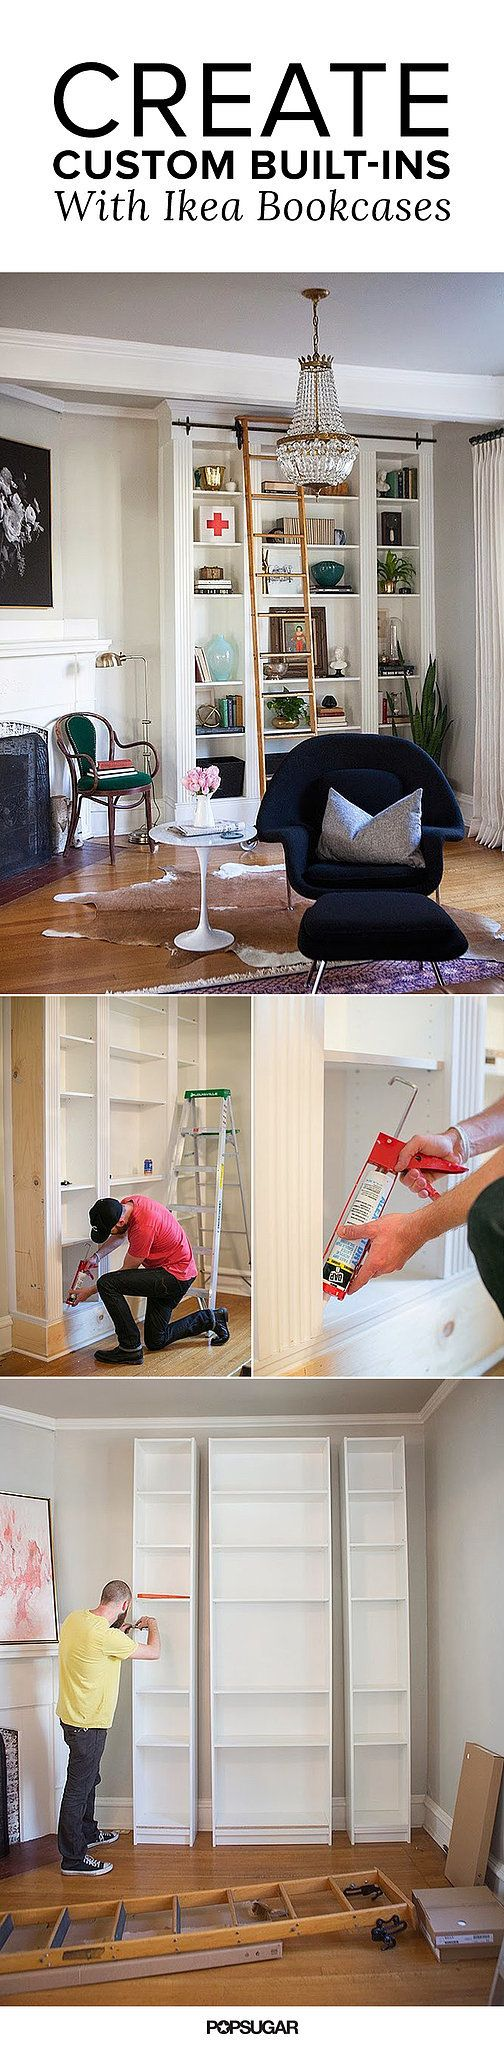 The Most Expensive-Looking Ikea Hack We've Ever Seen - from The Makerista via Popsugar